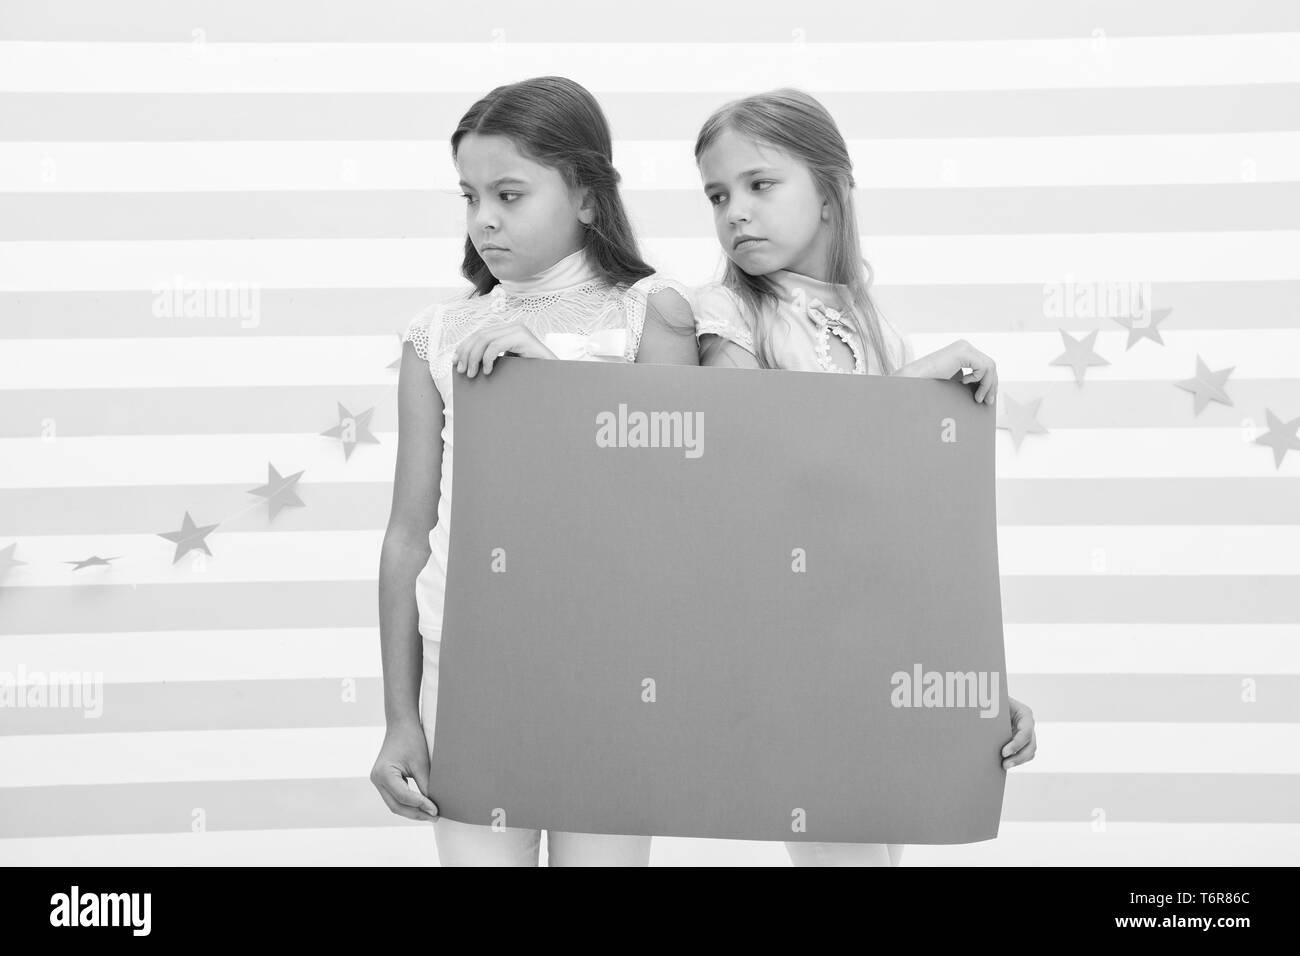 Regret to inform you. Girls hold advertisement poster copy space. Children hold advertising banner. Sad kids with blank paper advertisement. Advertisement concept. Your advertisement in good hands. - Stock Image